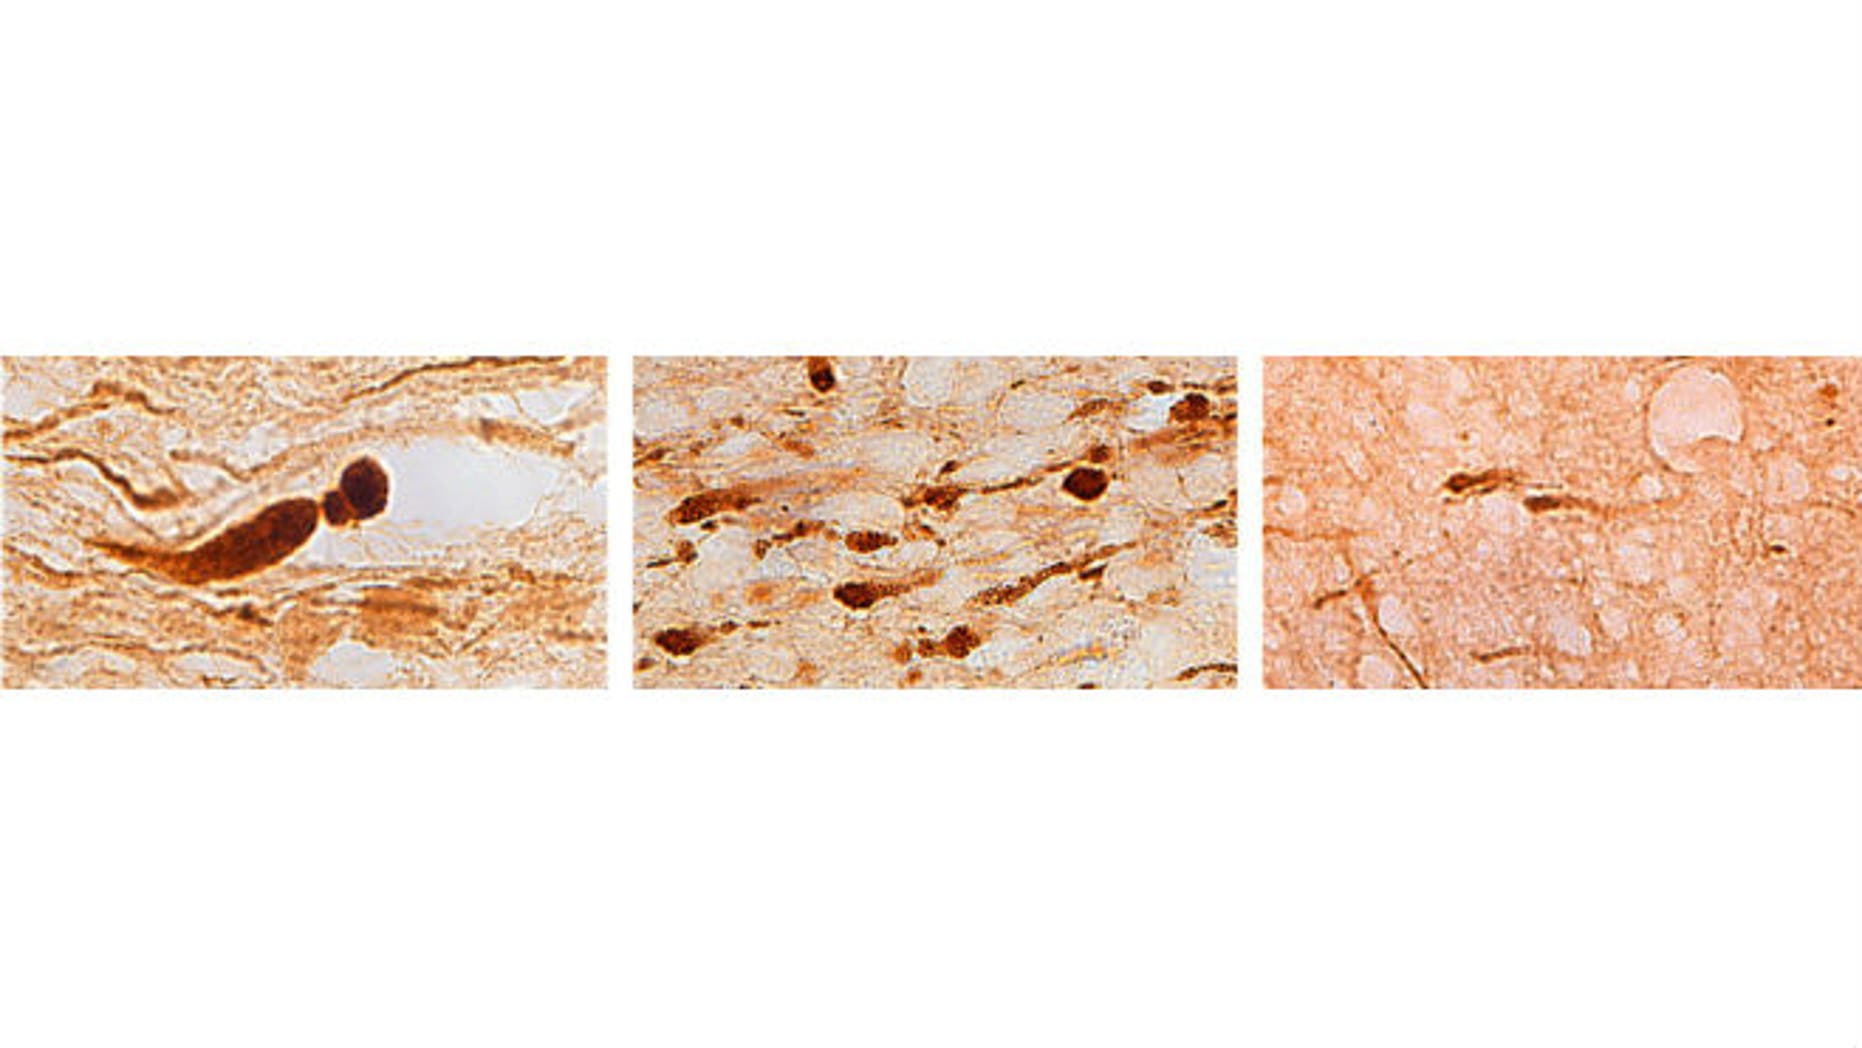 Brain sections from three different individuals show (left) axons with large, bulb-shaped lesions characteristic of a motor vehicle crash; (center) many smaller lesions characteristic of a blast injury; and (right) fewer lesions characteristic of an opiate overdose. (Credit: Vassilis Koliatsos)